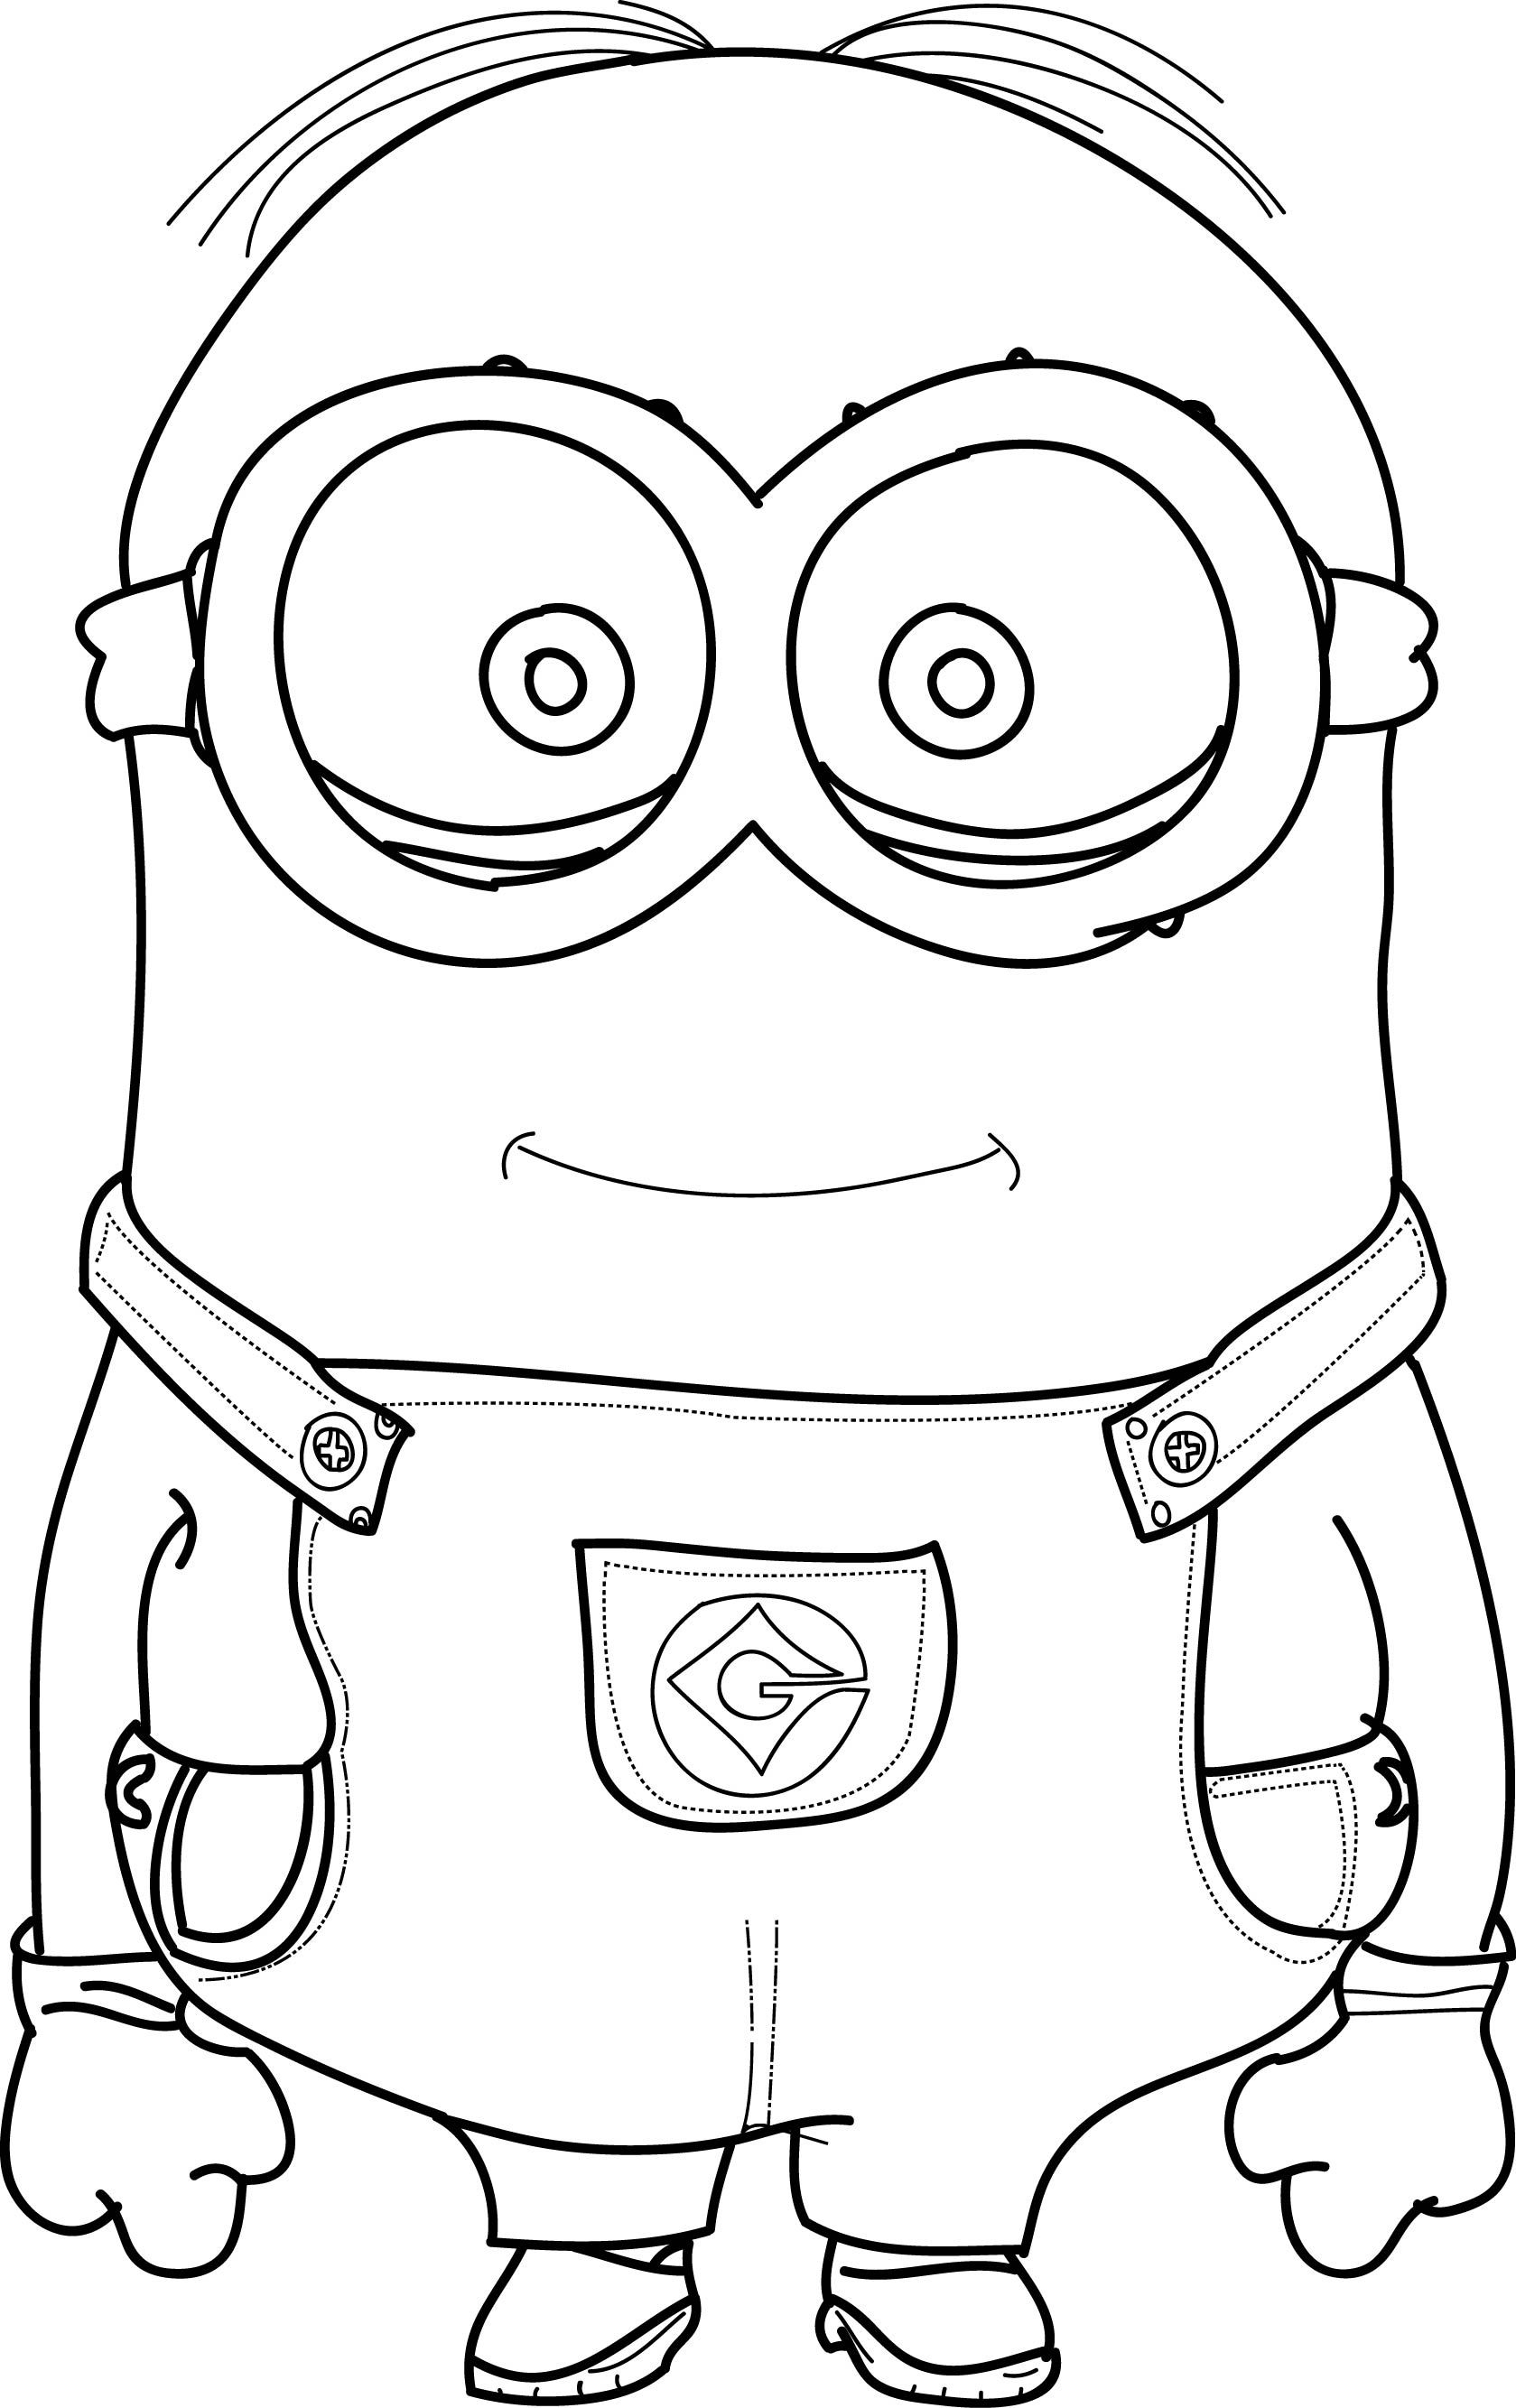 Ausmalbilder Geburtstag Minions : Cool Minions Coloring Pages Coloring Pages Pinterest